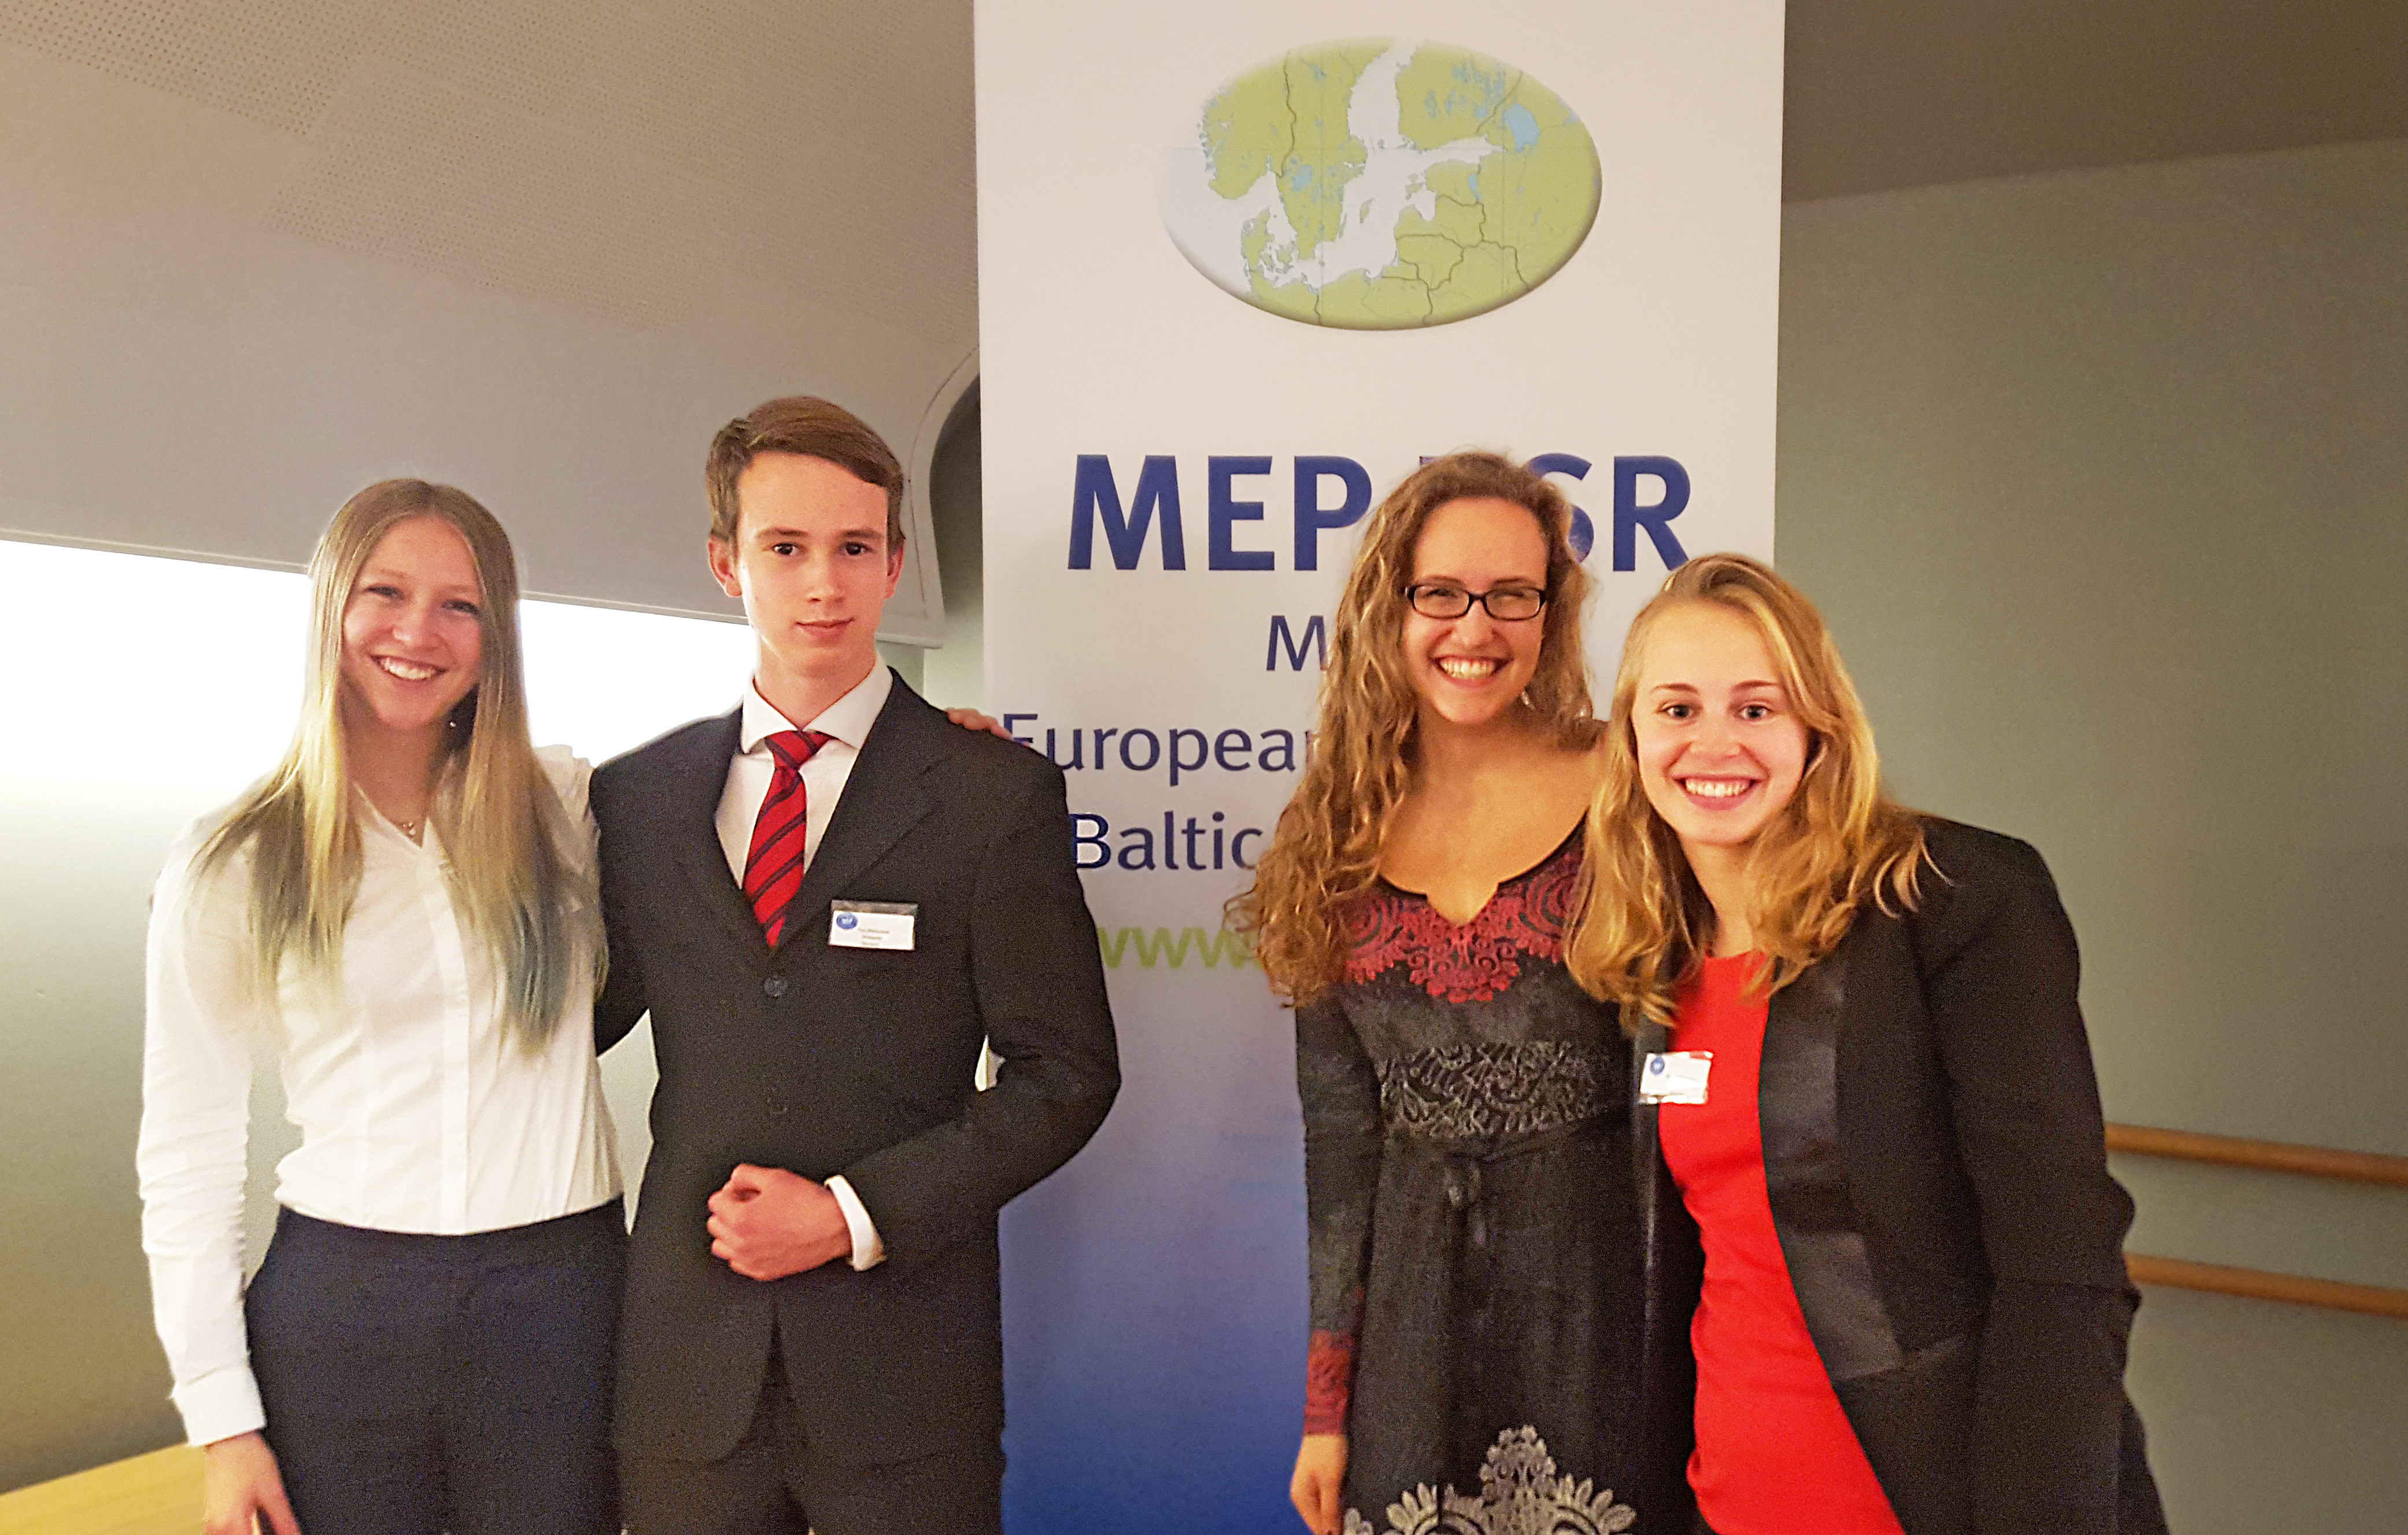 Students at the Model European Parliament Baltic Sea Region, MEP-BSR